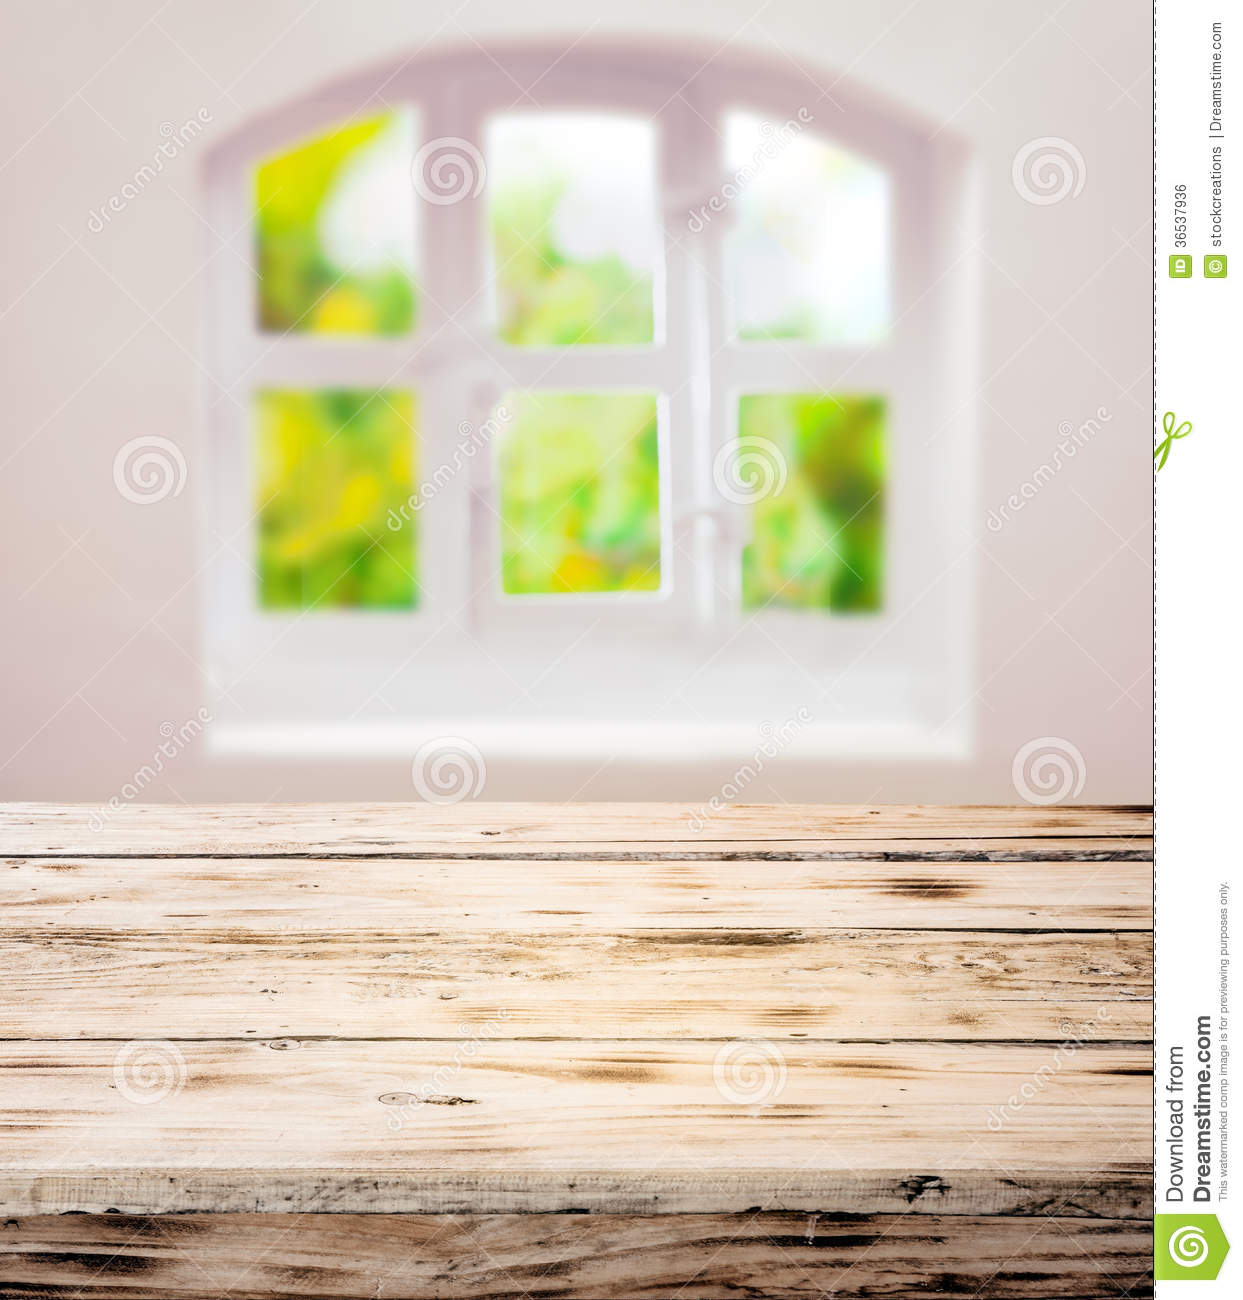 empty scrubbed clean rustic wooden kitchen table under pretty white domed window cottage panes country ready 36537936